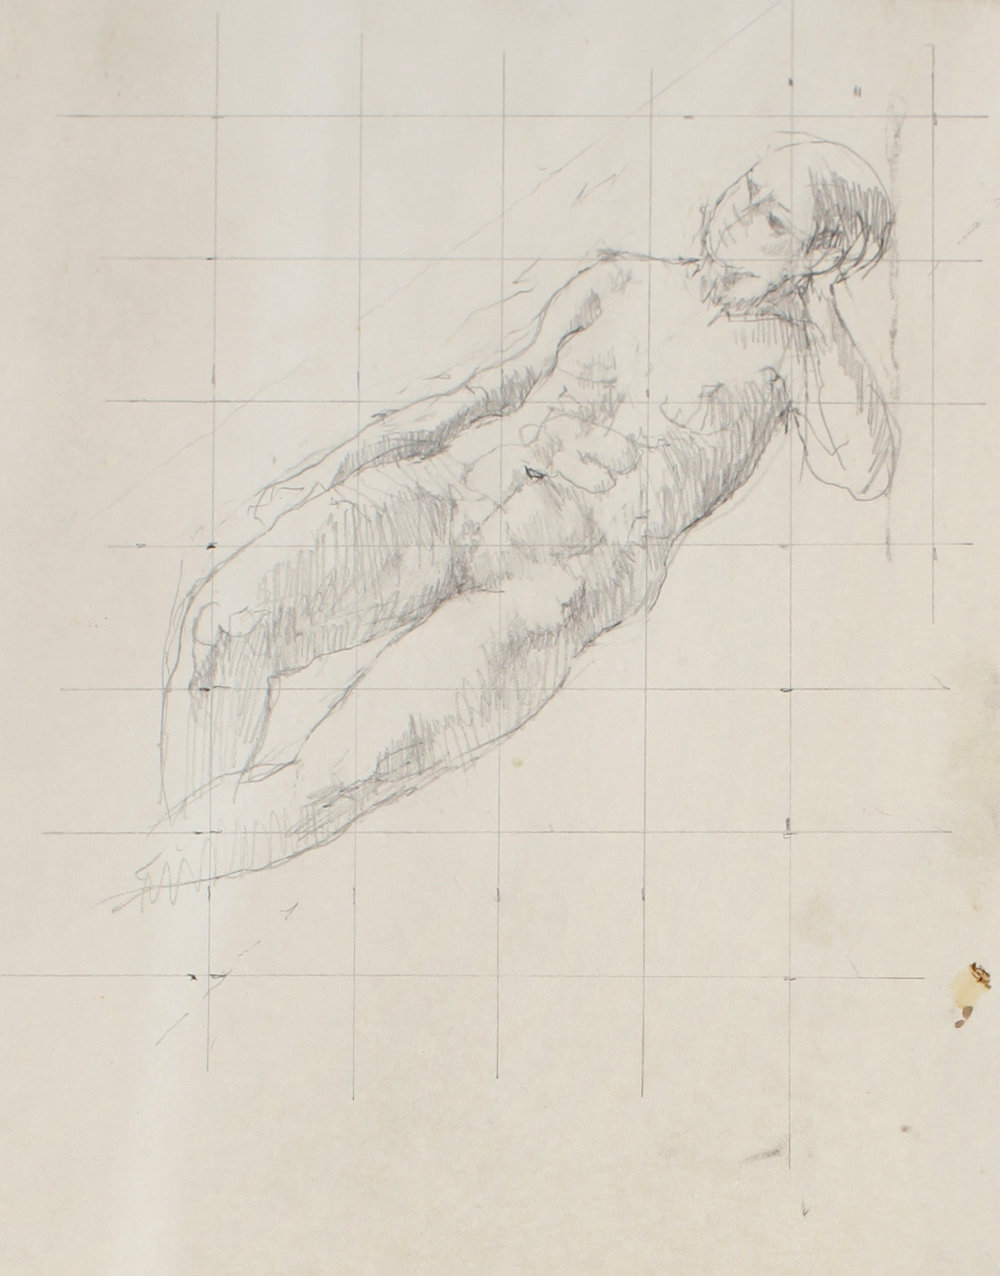 1990s_Reclining_Nude_on_Squared_Paper_pencil_on_paper_10x7in_WPF589.jpg